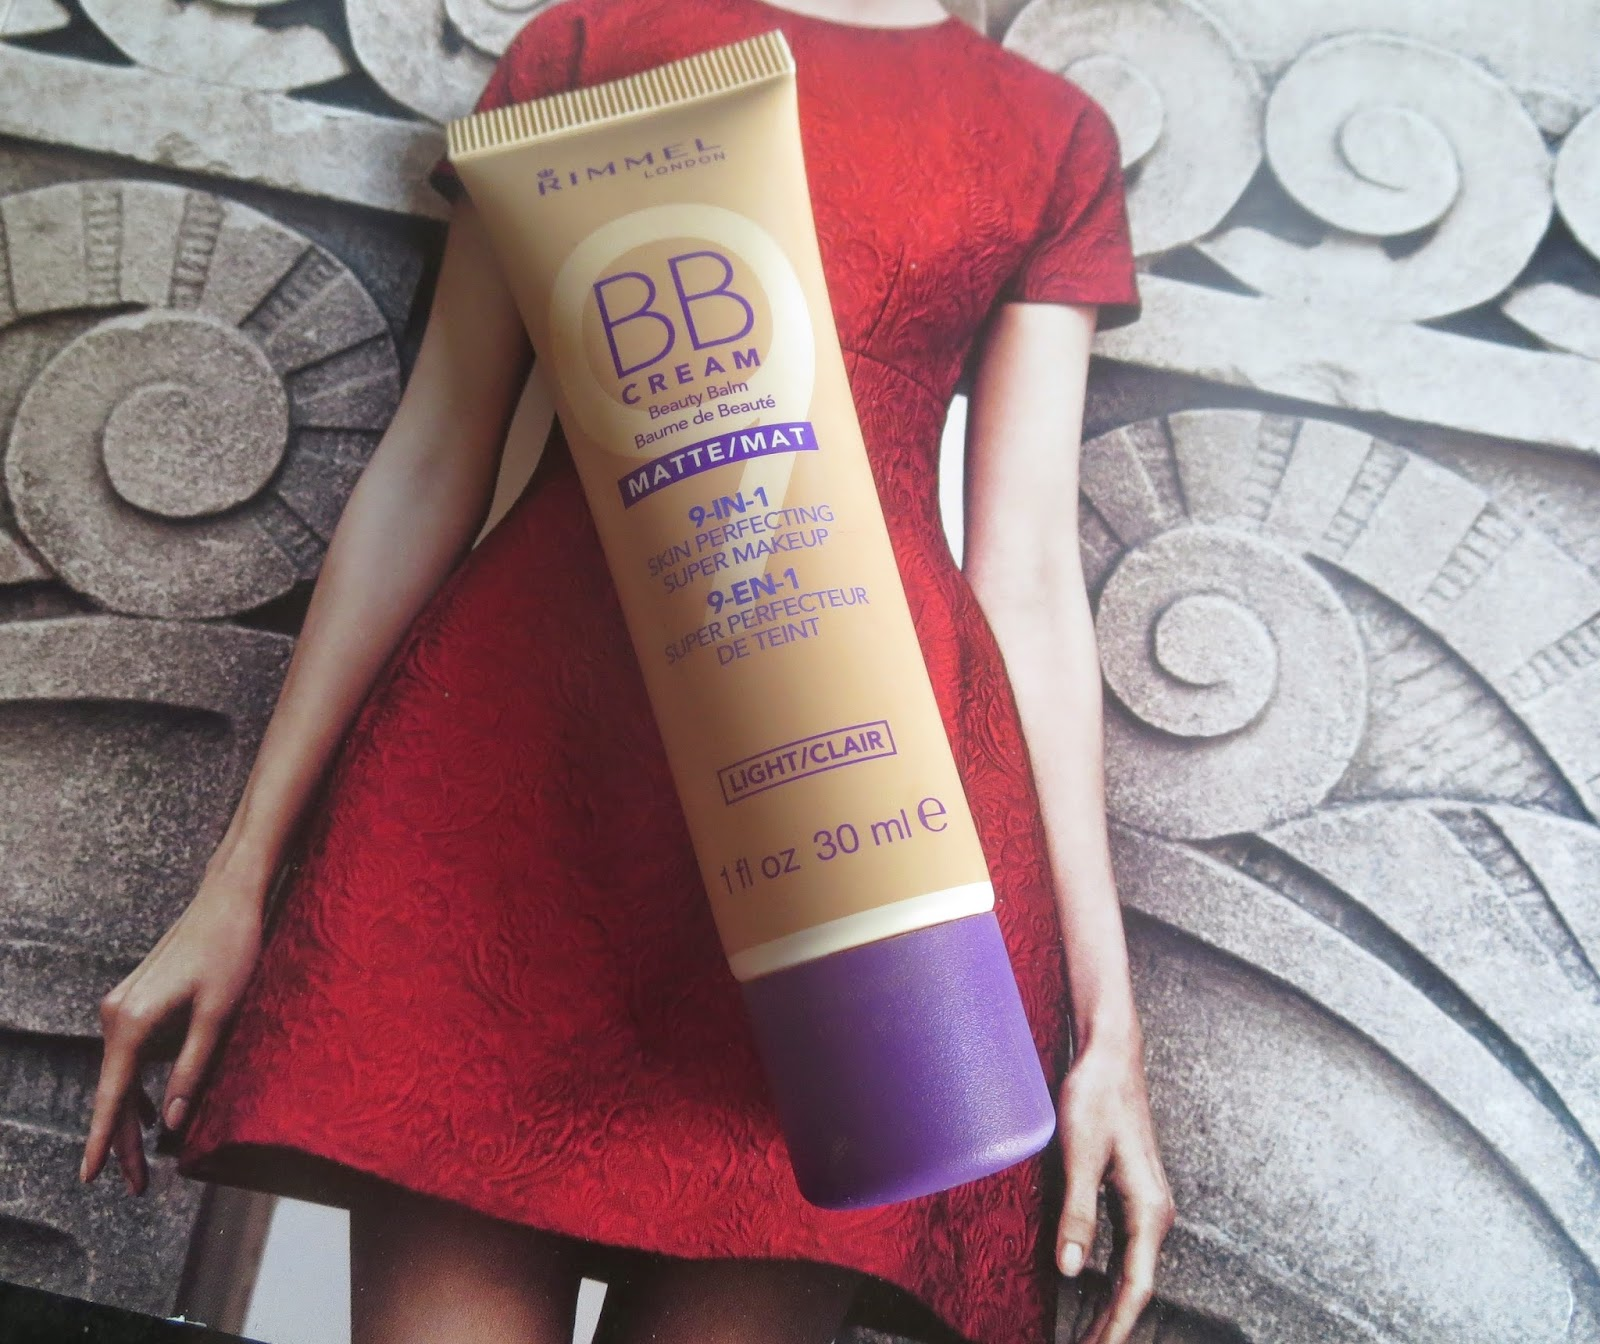 a picture of Rimmel BB Cream Matte, blog